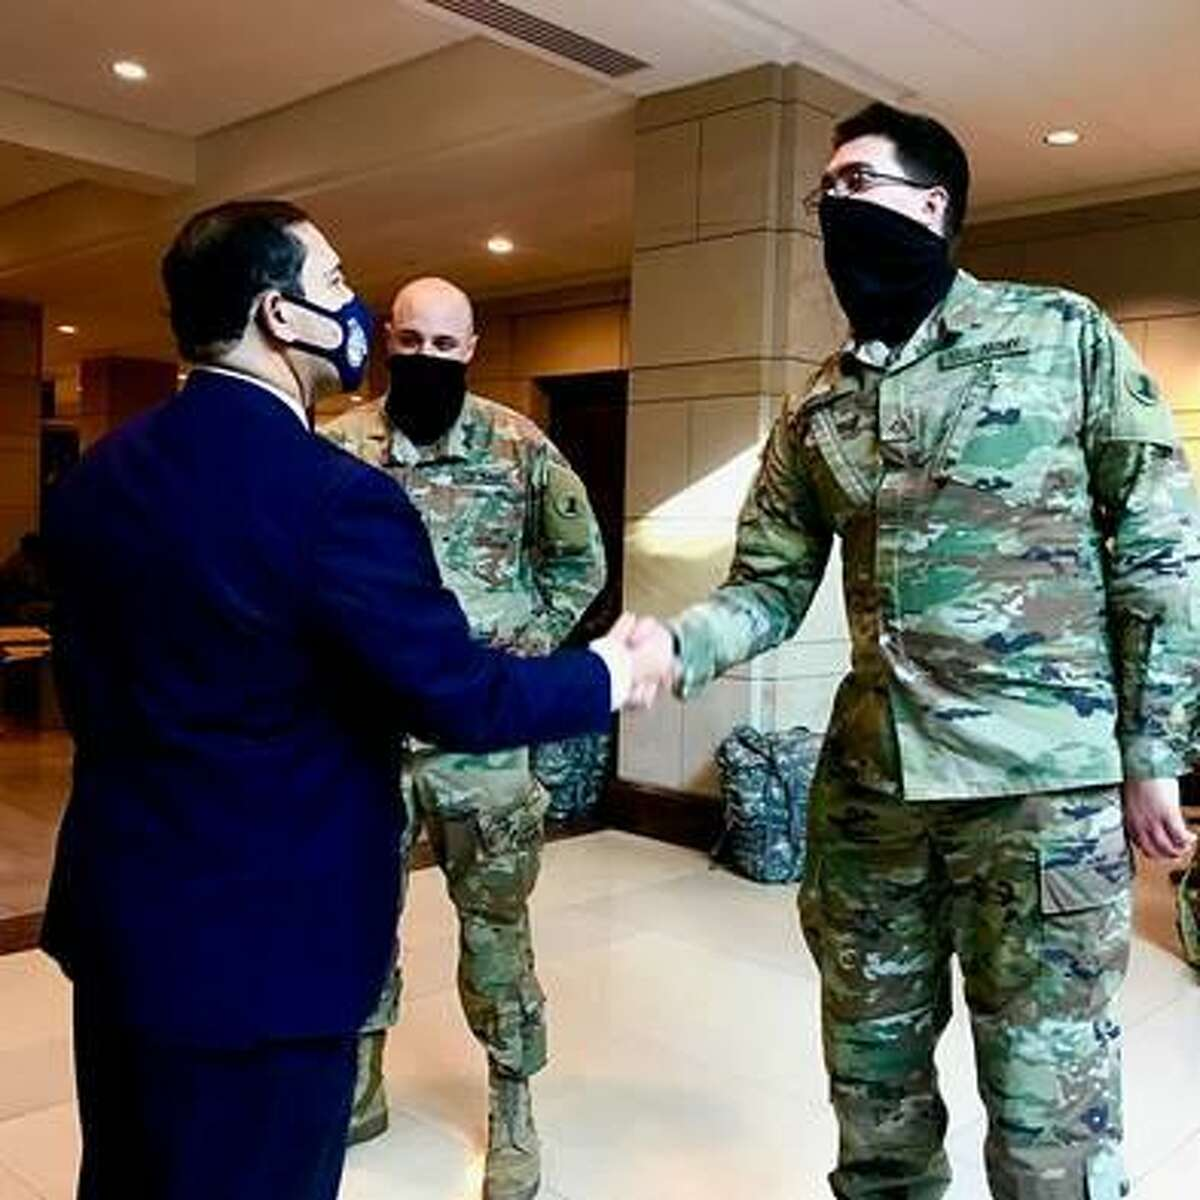 Rep. Henry Cuellar shakes hands with a National Guard member in the Capitol Visitors Center.